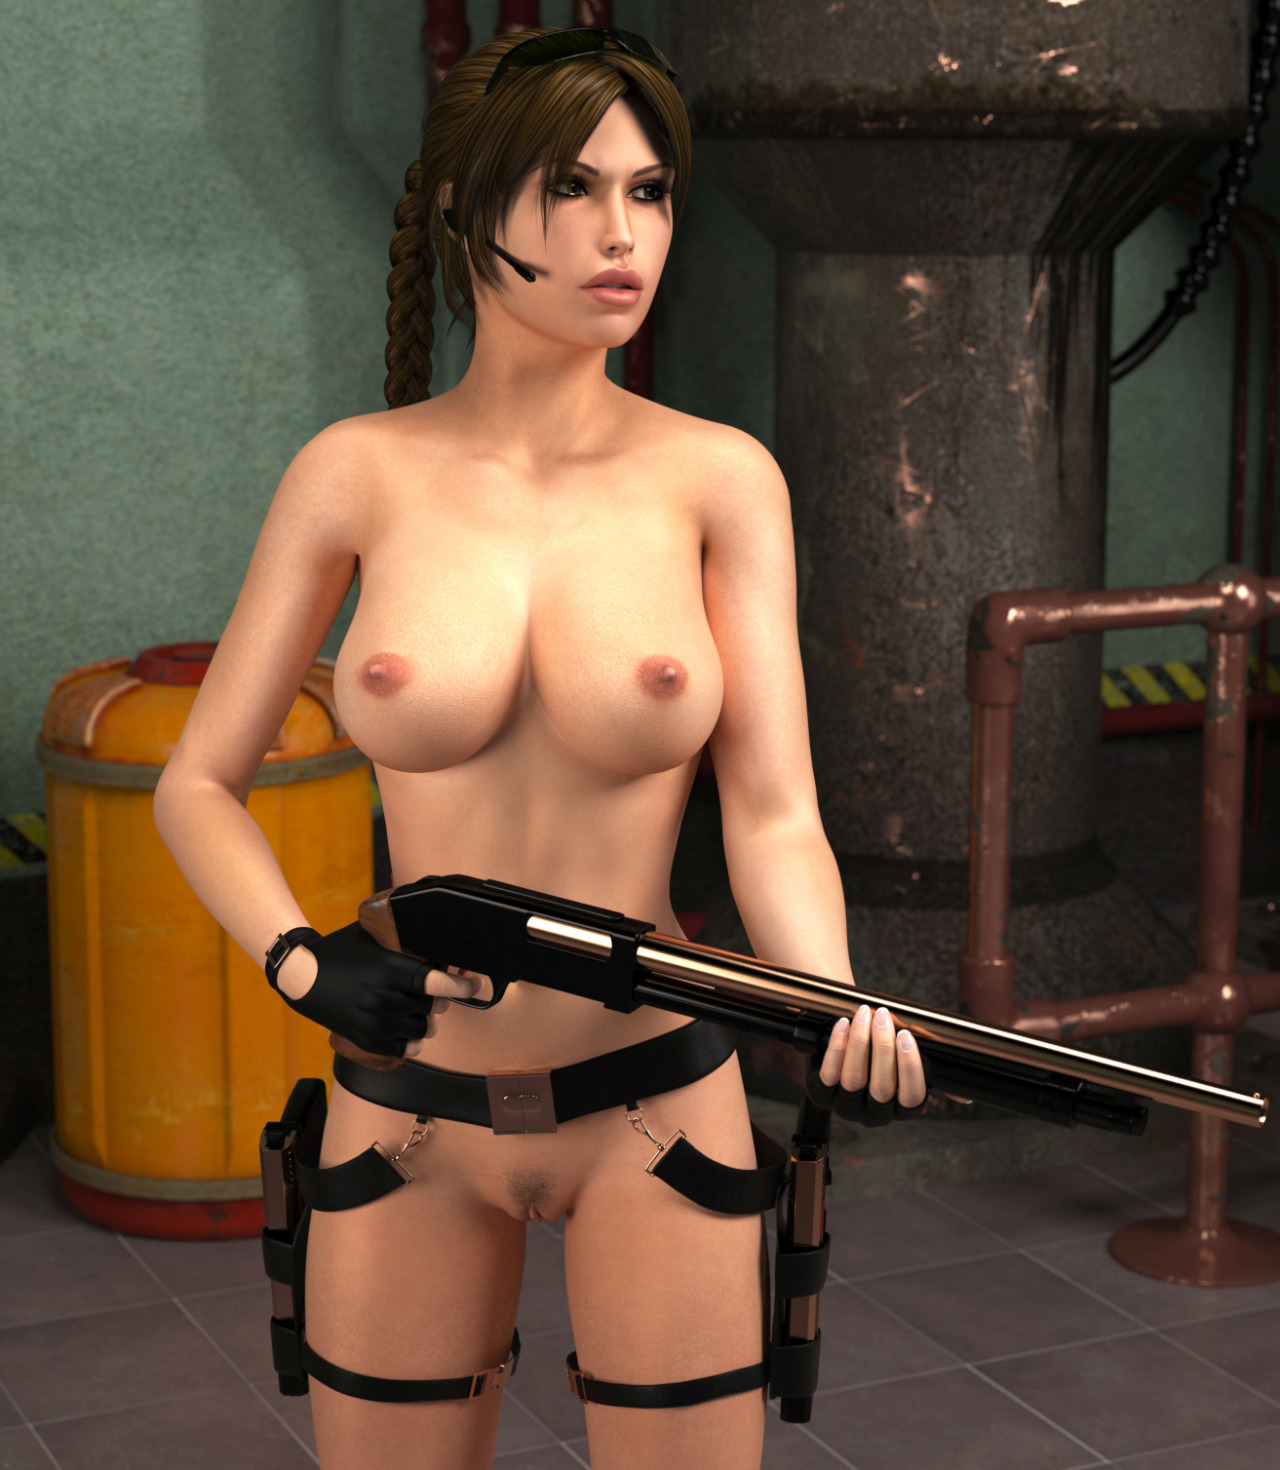 women Hot in games naked